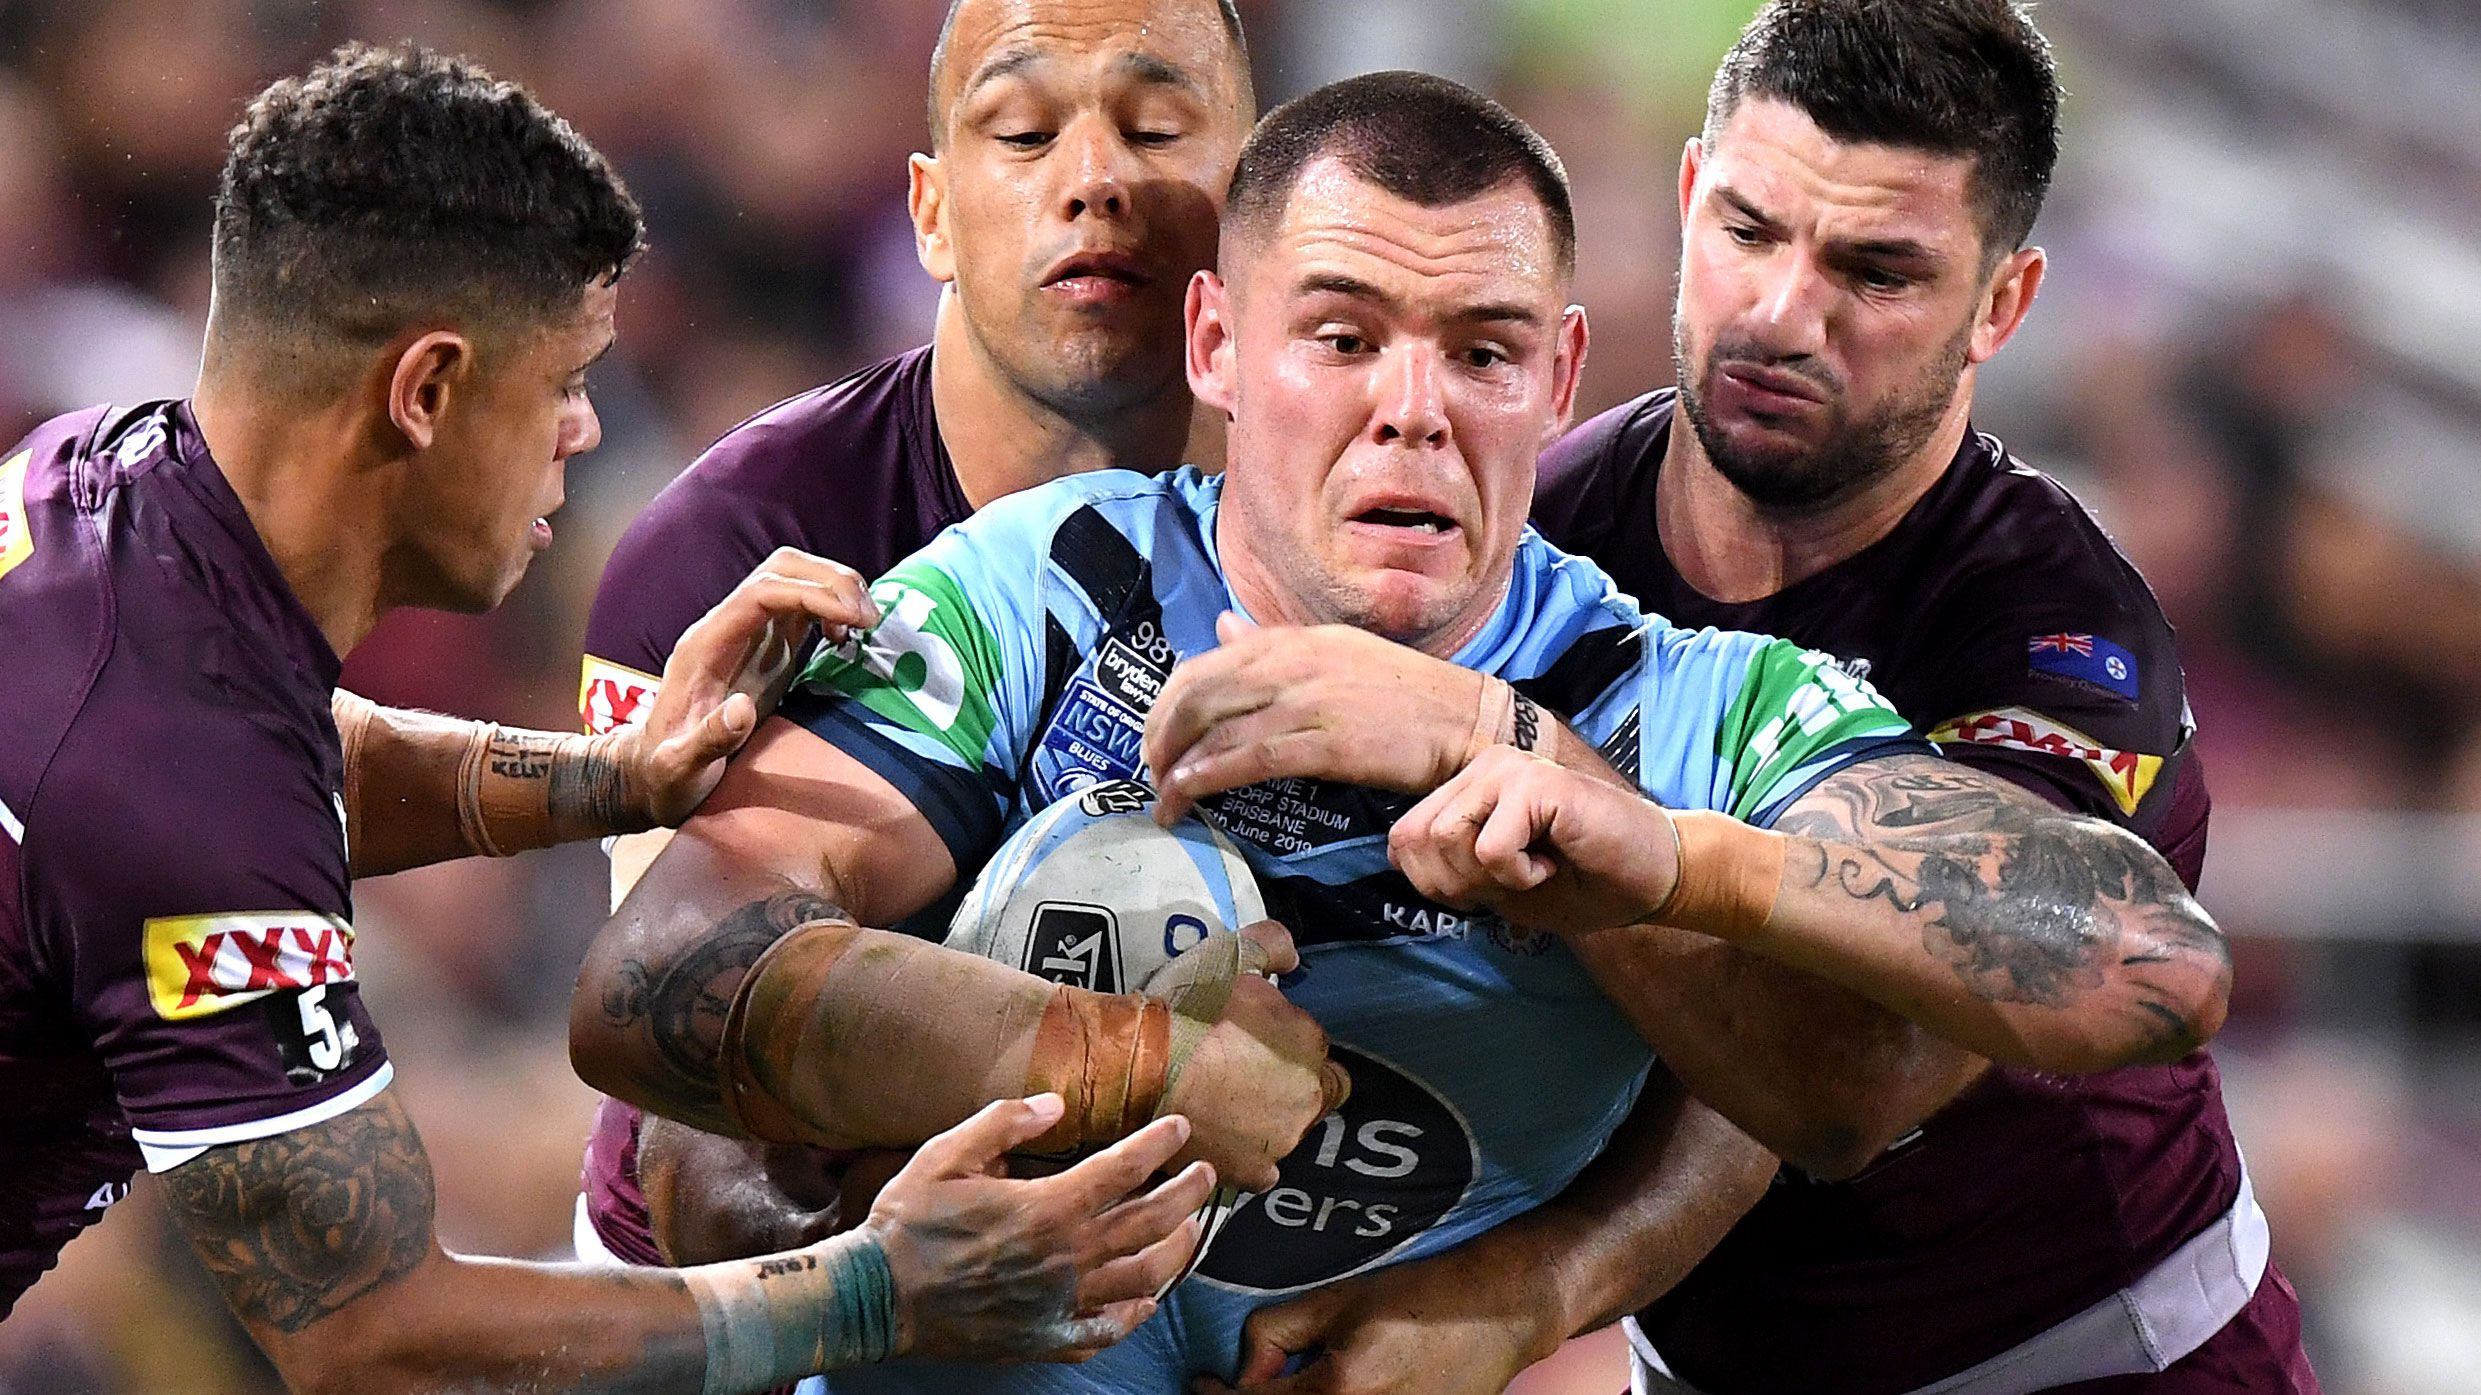 NSW Blues recall David Klemmer after Tariq Sims guilty verdict